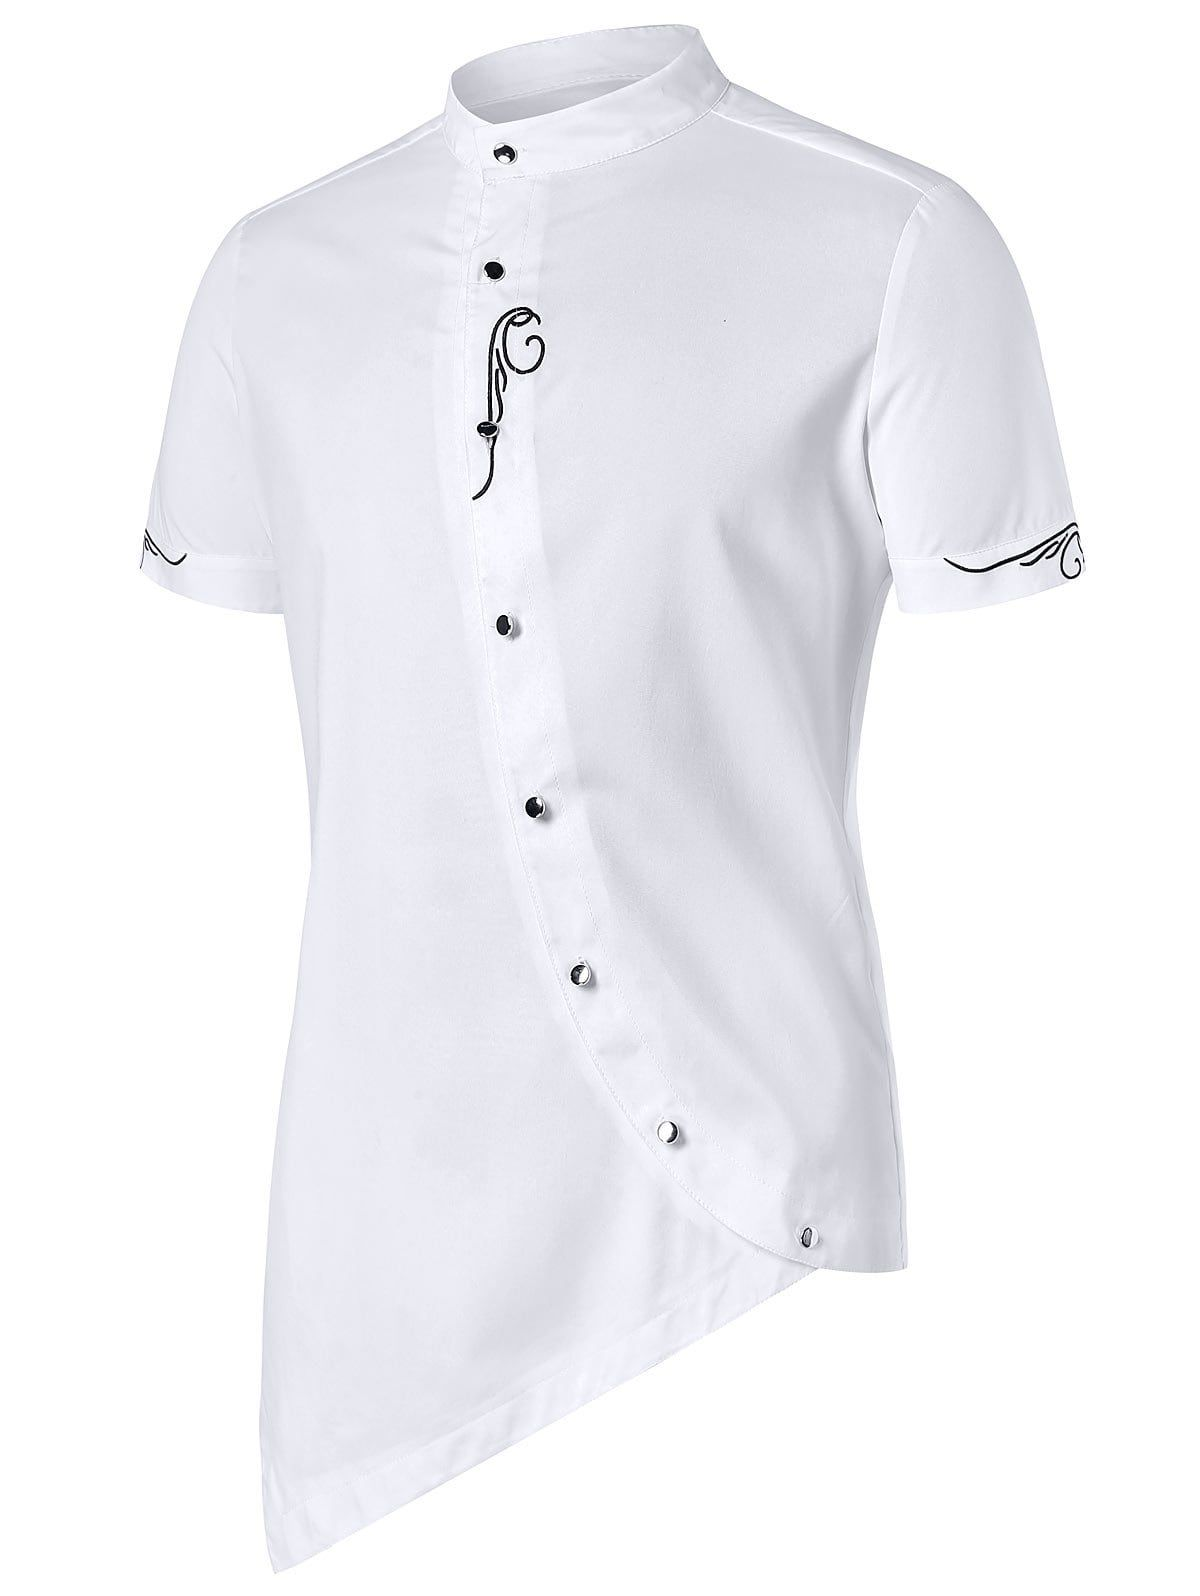 Stand Collar Shirts Designs : Asymmetric embroidery stand collar shirt white xl men s